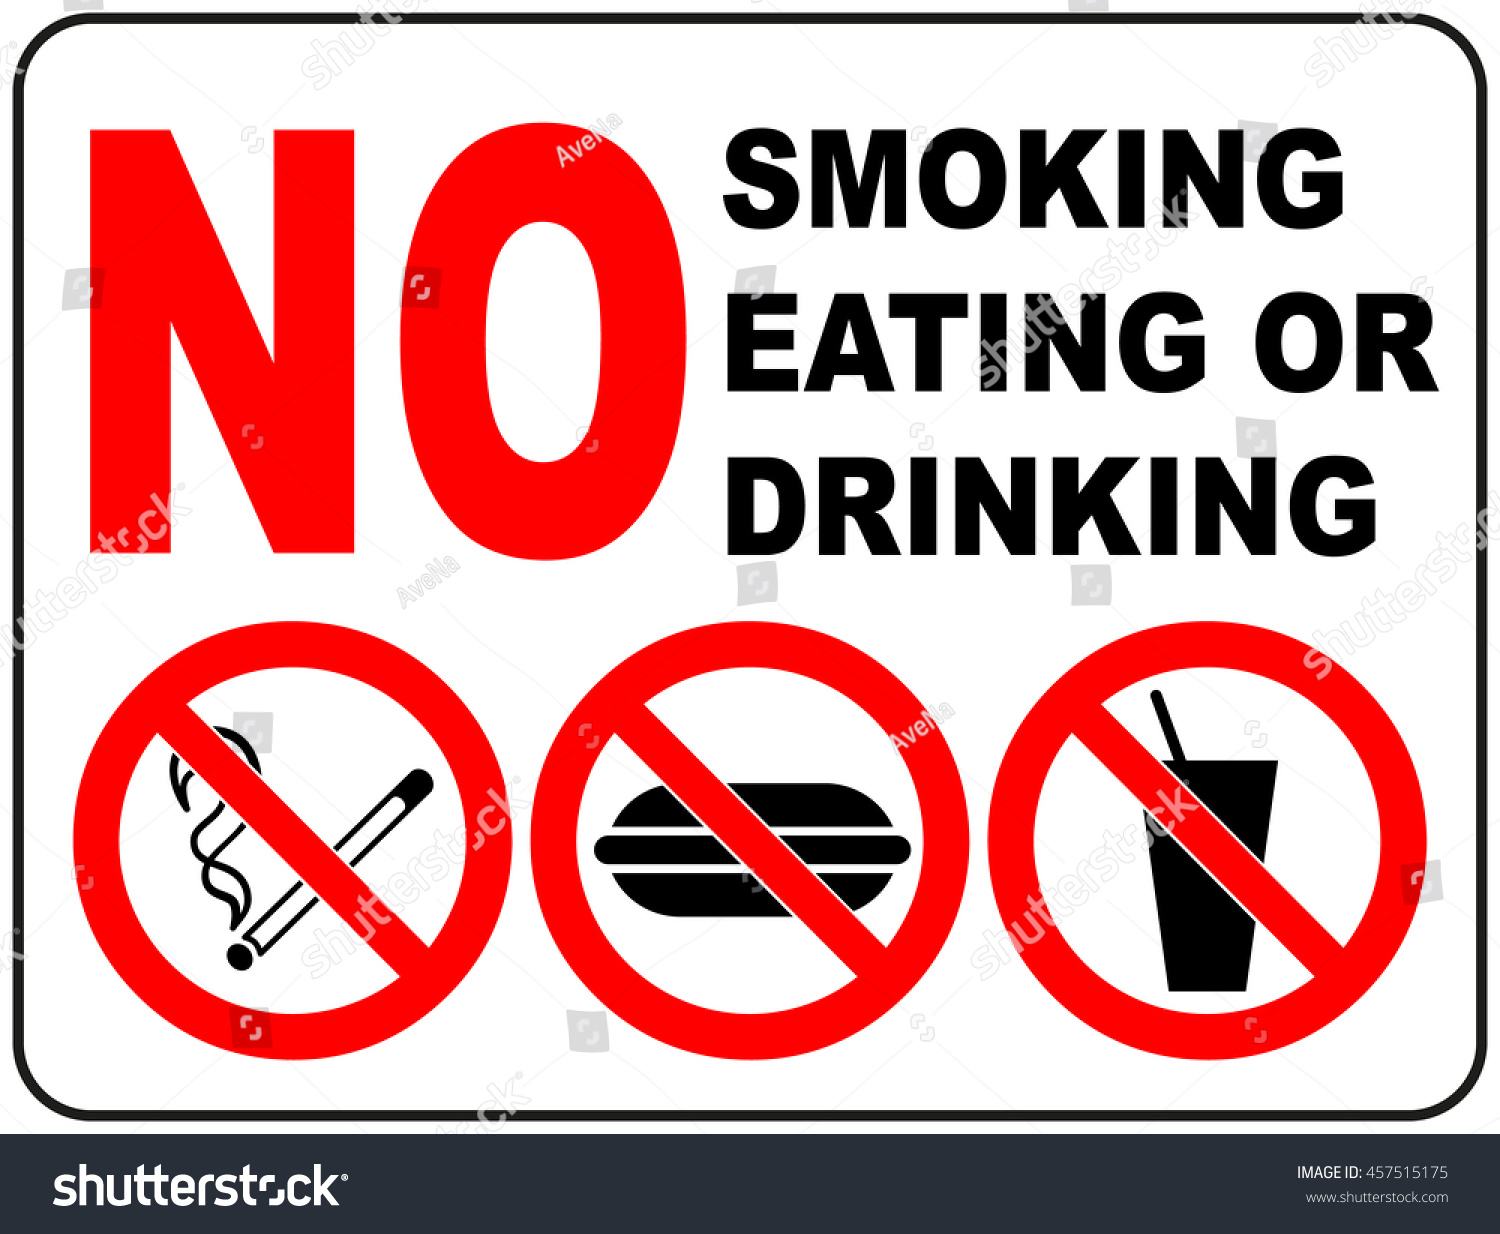 Prohibition Signs Smoking Eating Drinking General Stock